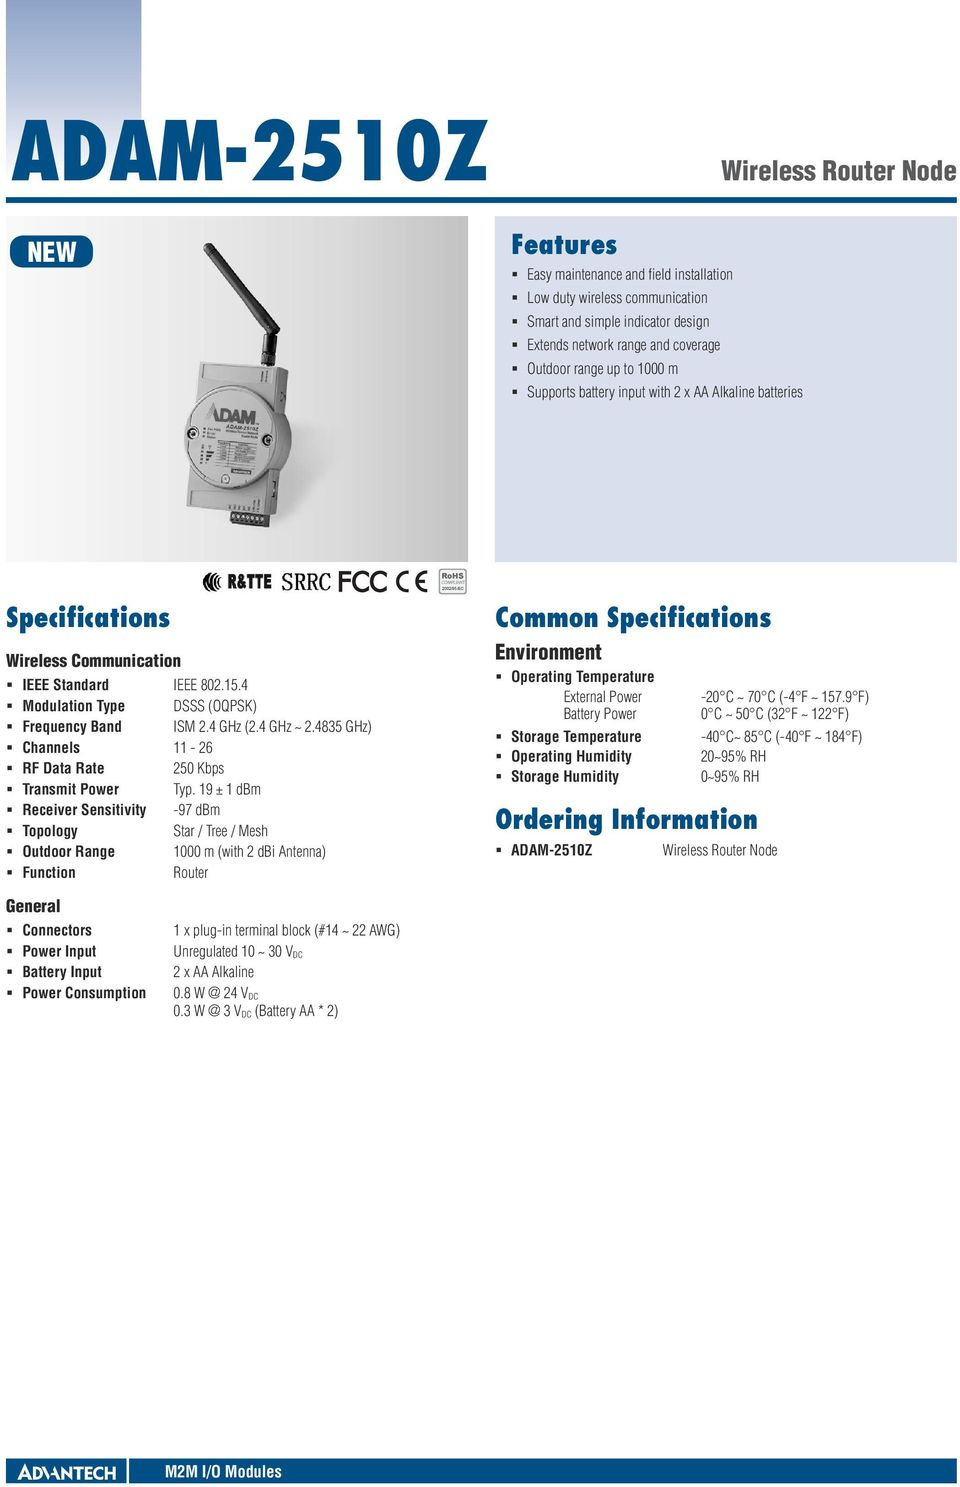 4835 GHz) Channels 11-26 RF Data Rate 250 Kbps Transmit Power Typ.